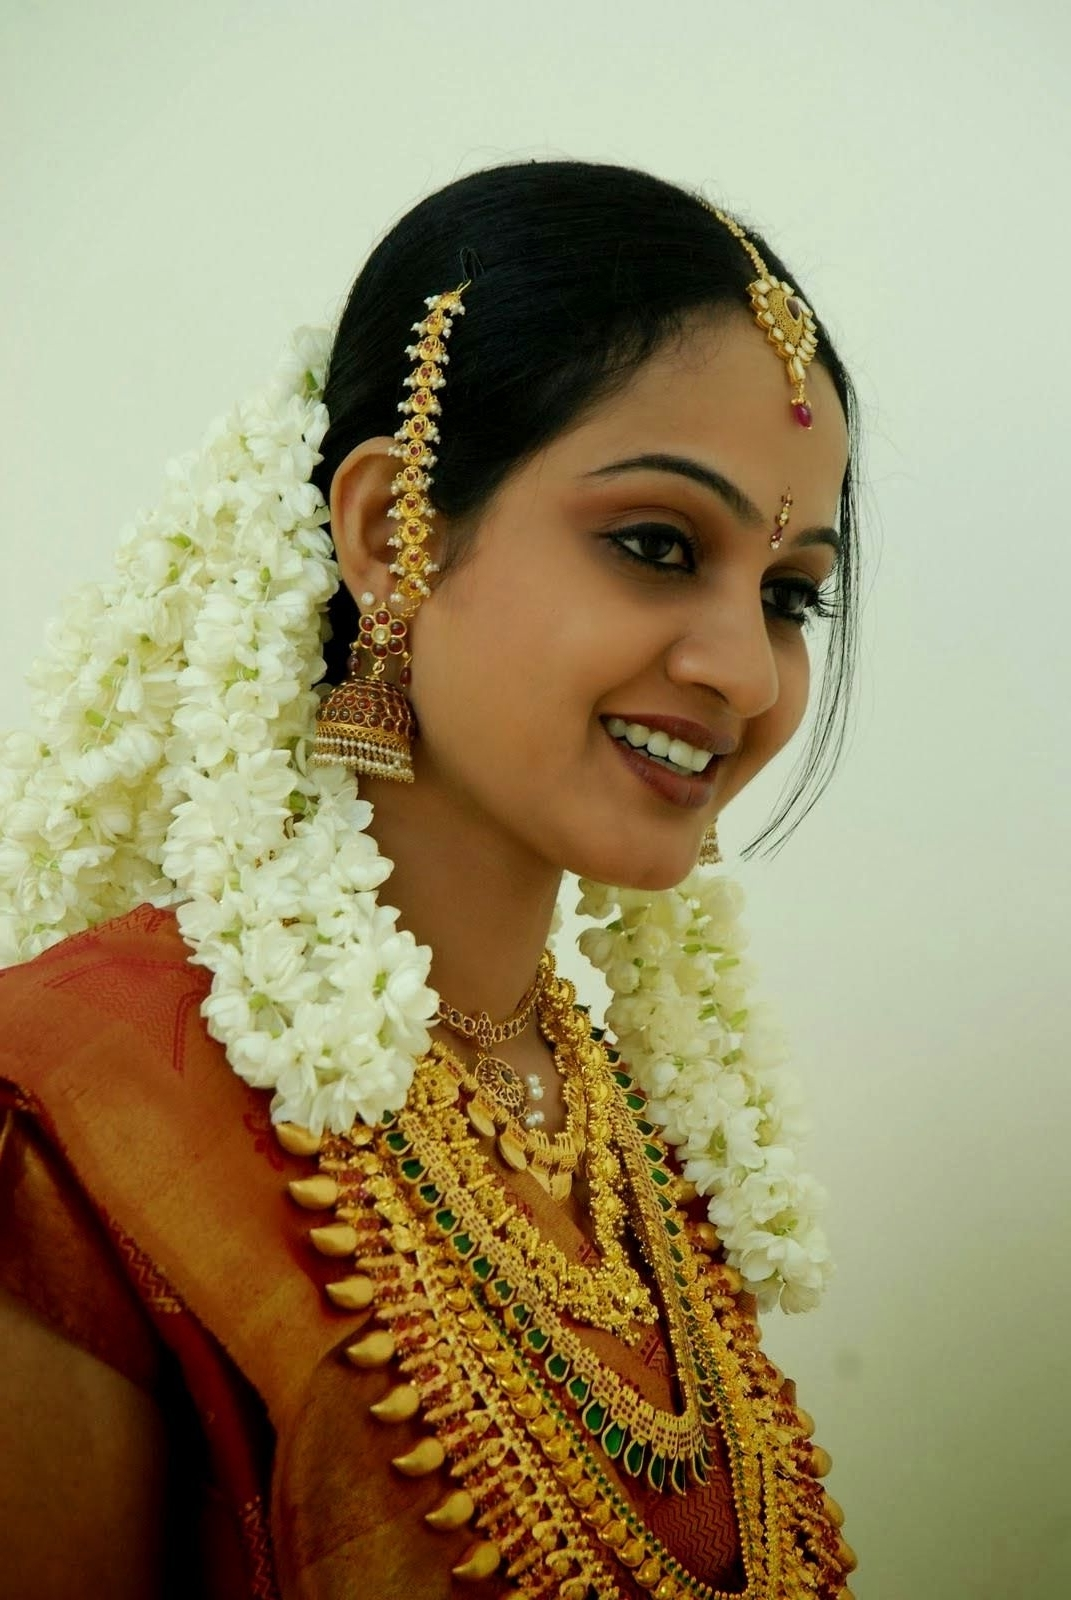 Hindu Wedding Hairstyles Kerala Hindu Bridal Hairstyles Pictures With 2018 Hindu Wedding Hairstyles For Long Hair (View 4 of 15)